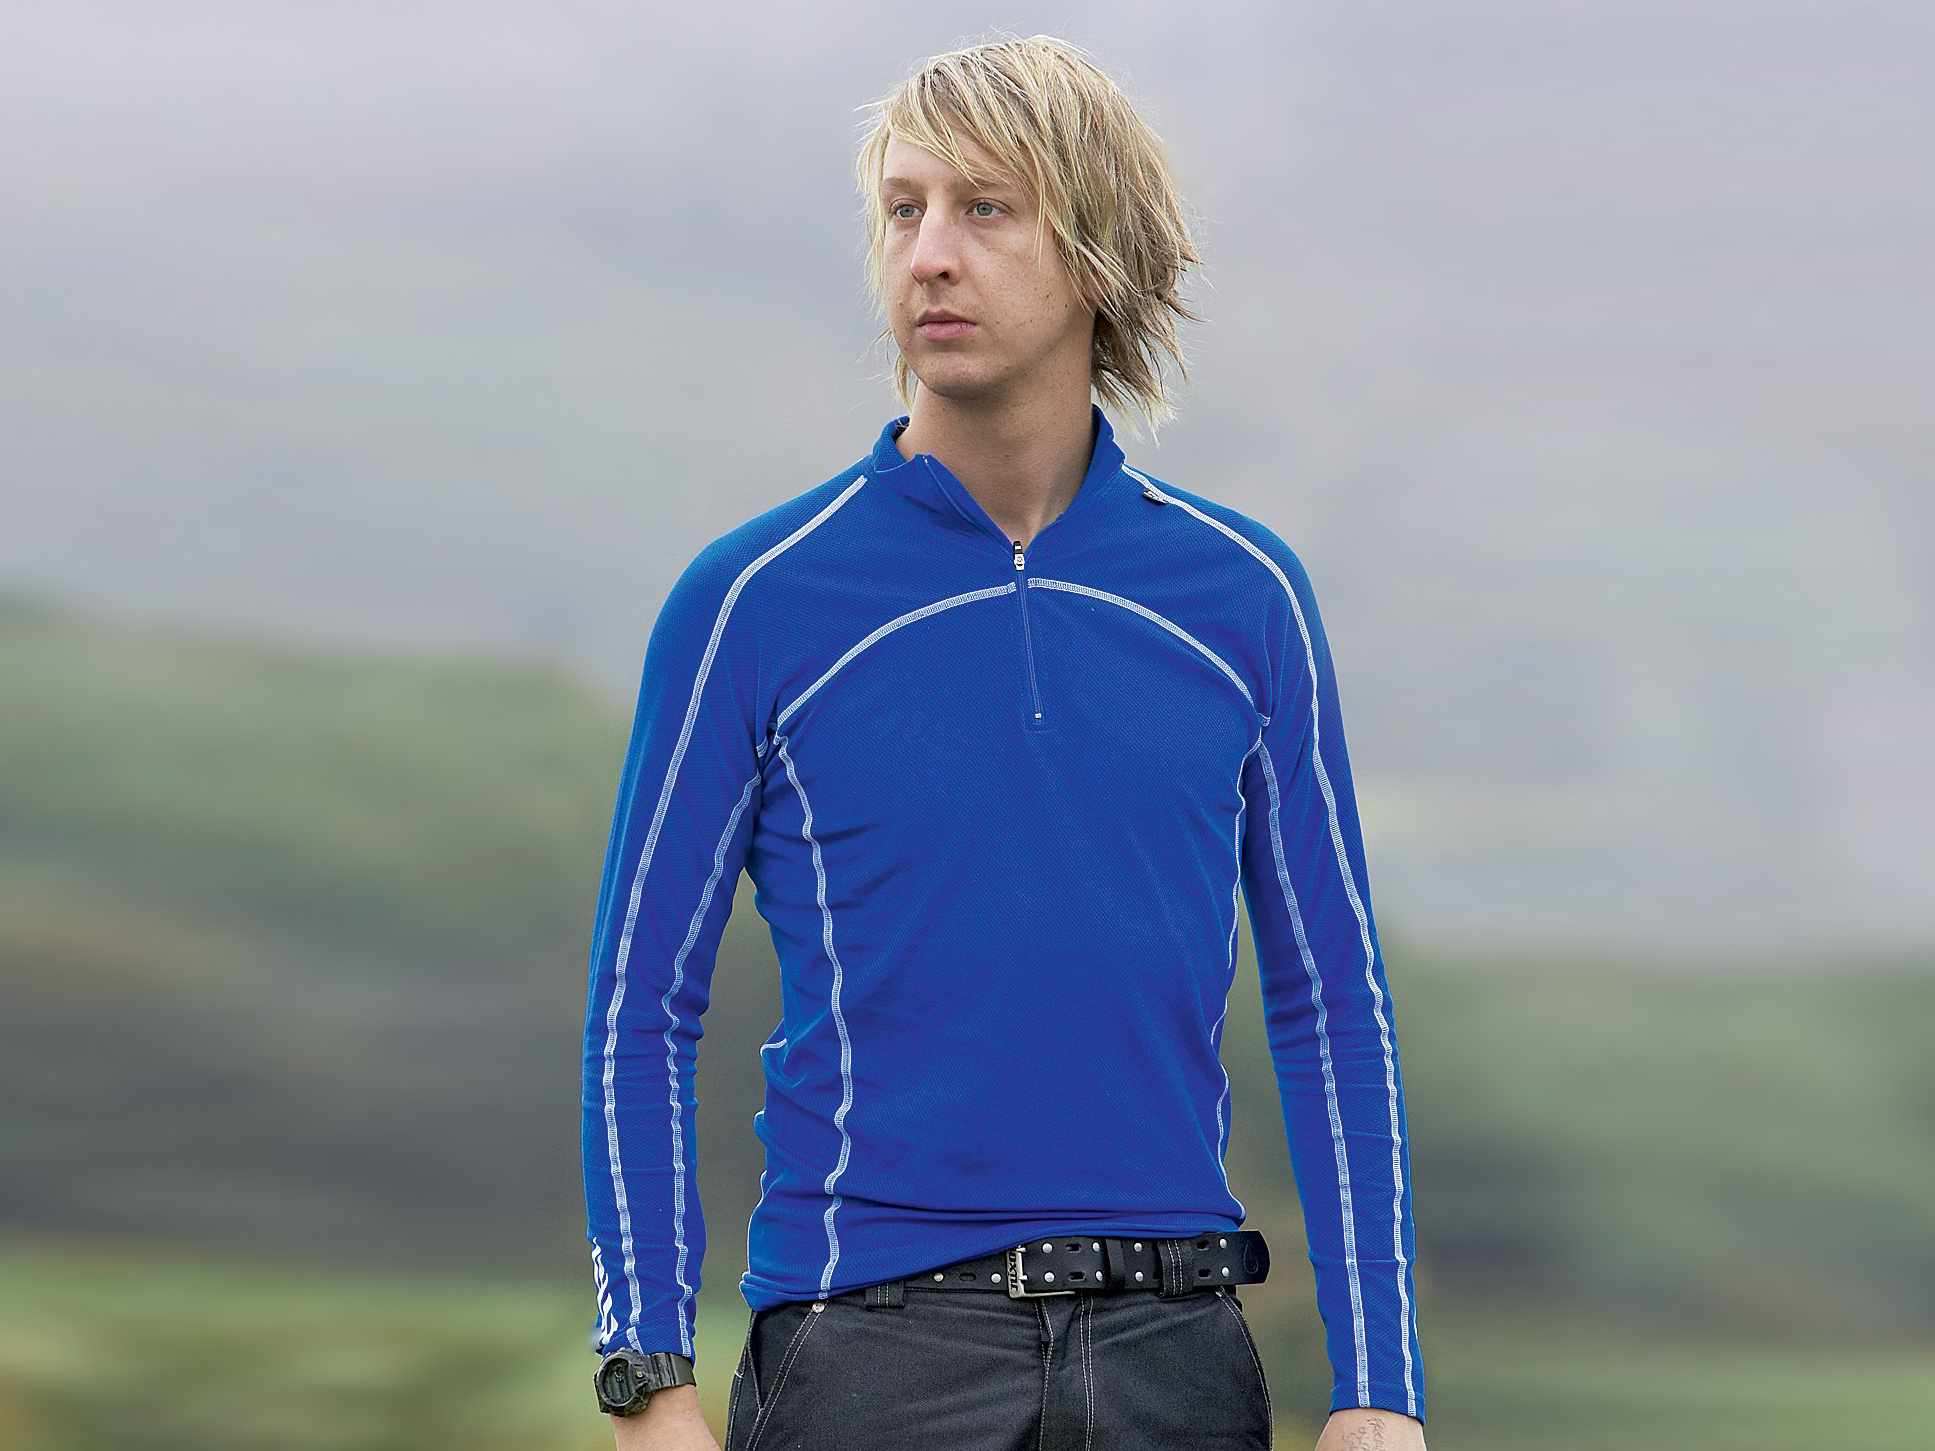 The Charger top can be used on its own in mild weather, or as a base layer.